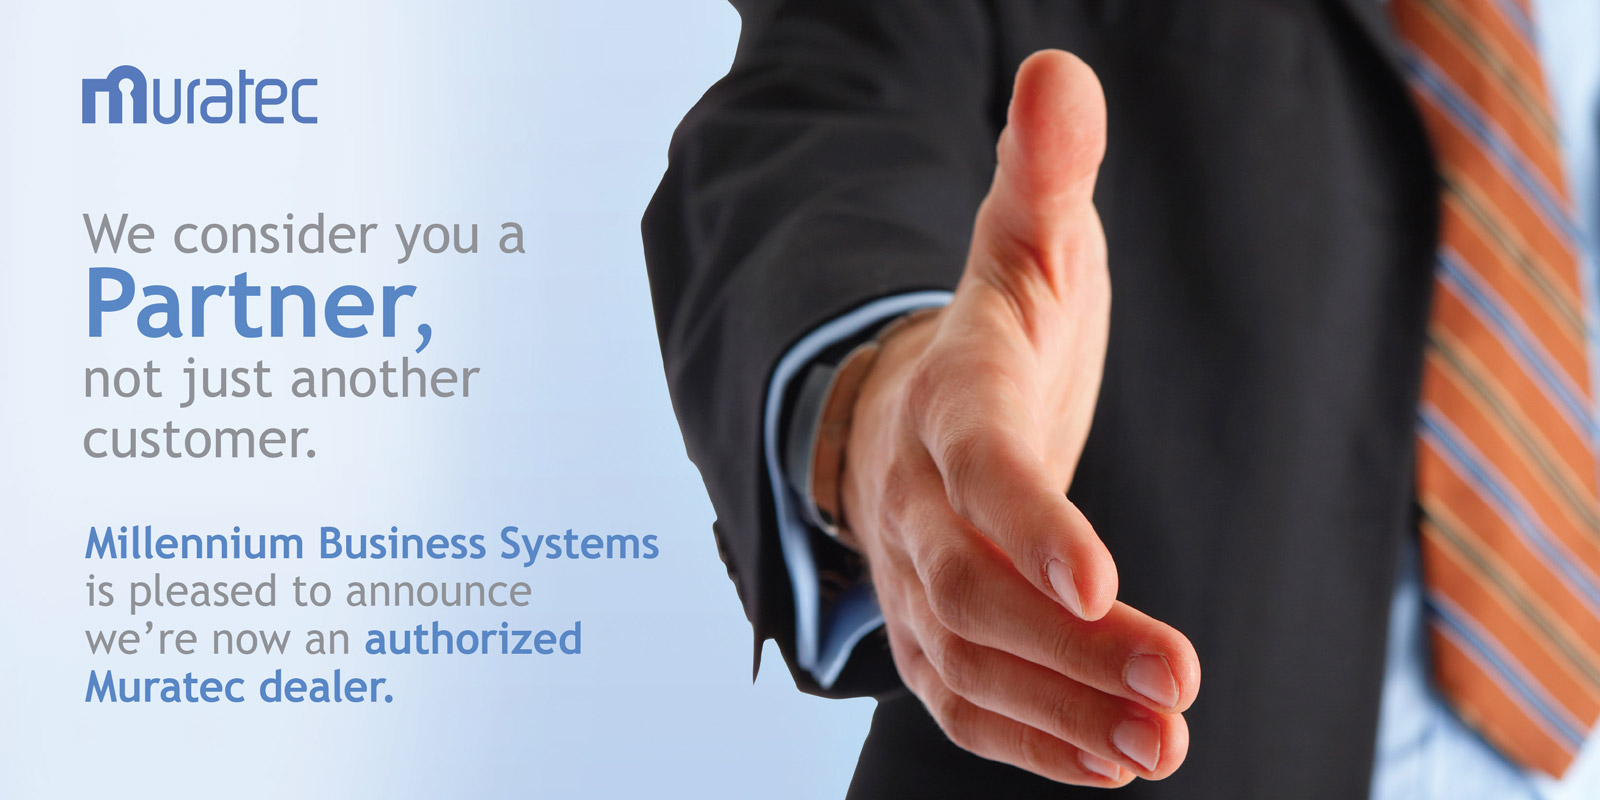 Millennium Business Systems is proud to be Authorized Muratec Dealer